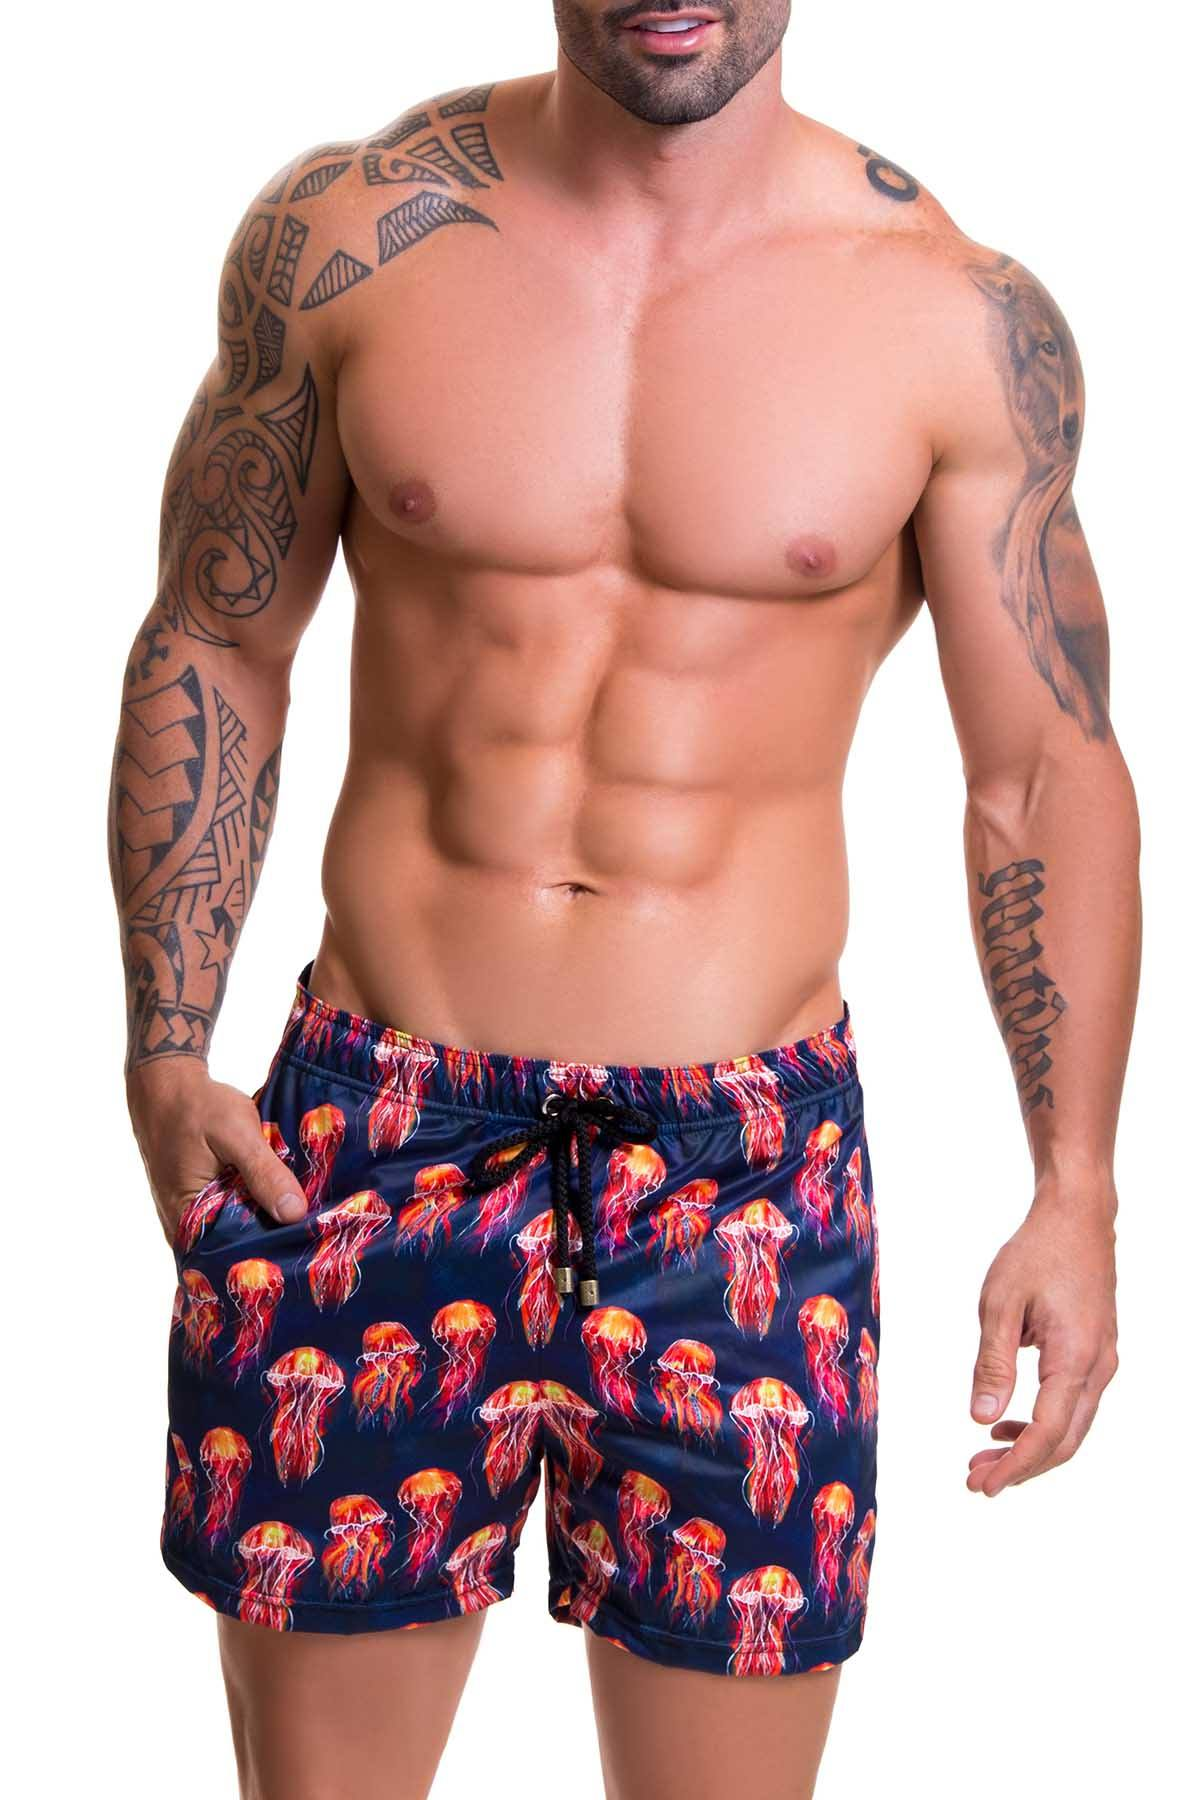 Jor Navy/Red Jellyfish-Printed Beach Swim Short